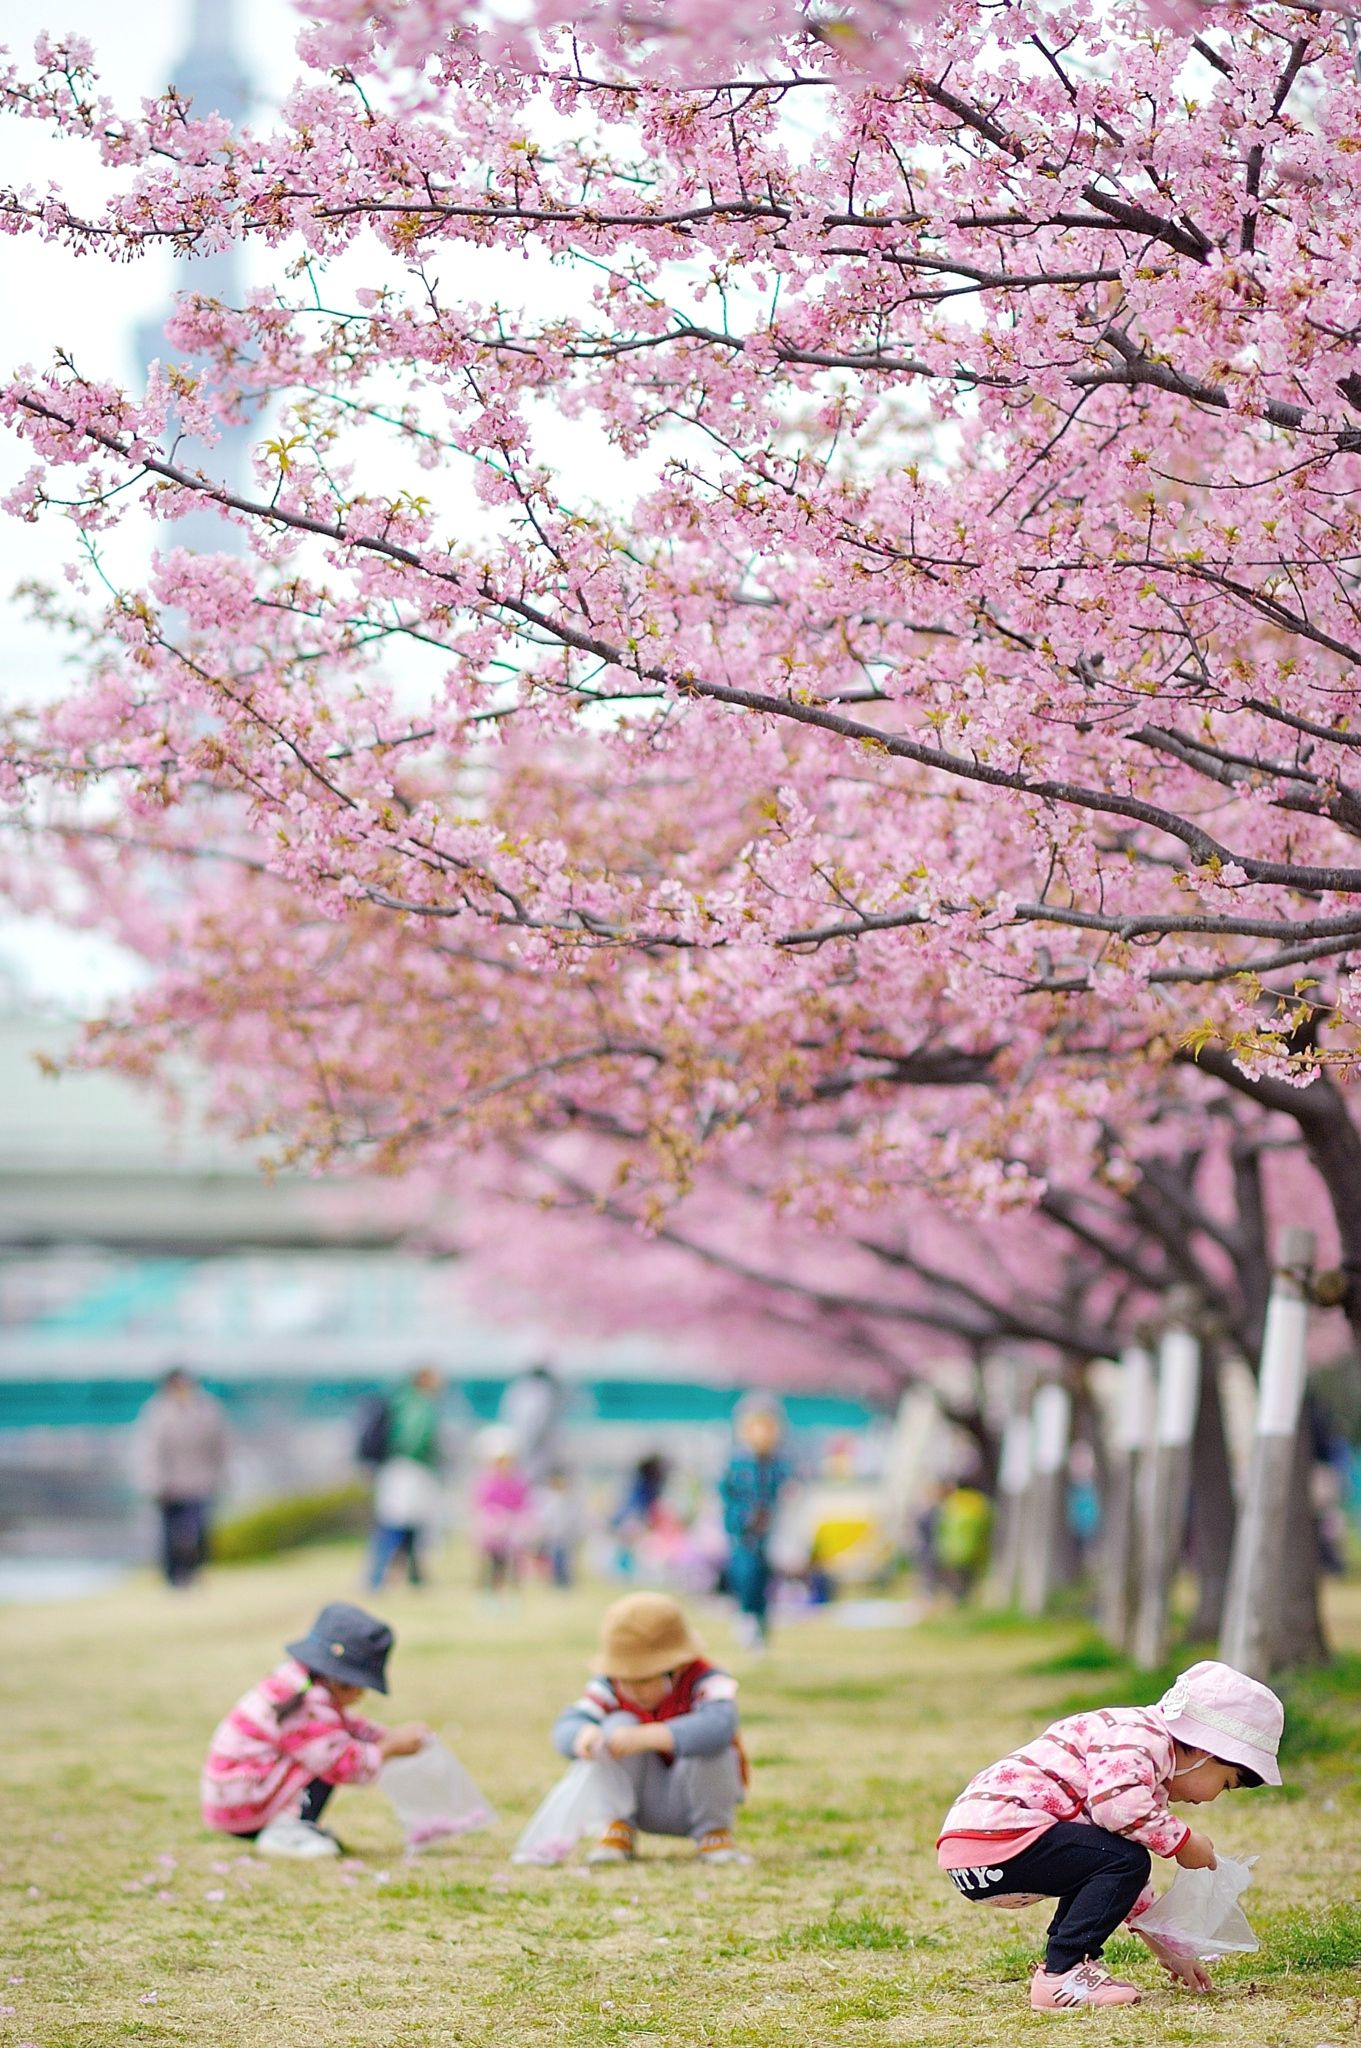 Live Can T Get Enough Of Beautiful Cherry Blossom Season In Australia Cherryblossom Cherry Sakura Sakura Cherry Blossom Season Sakura Bloom Spring Flowers